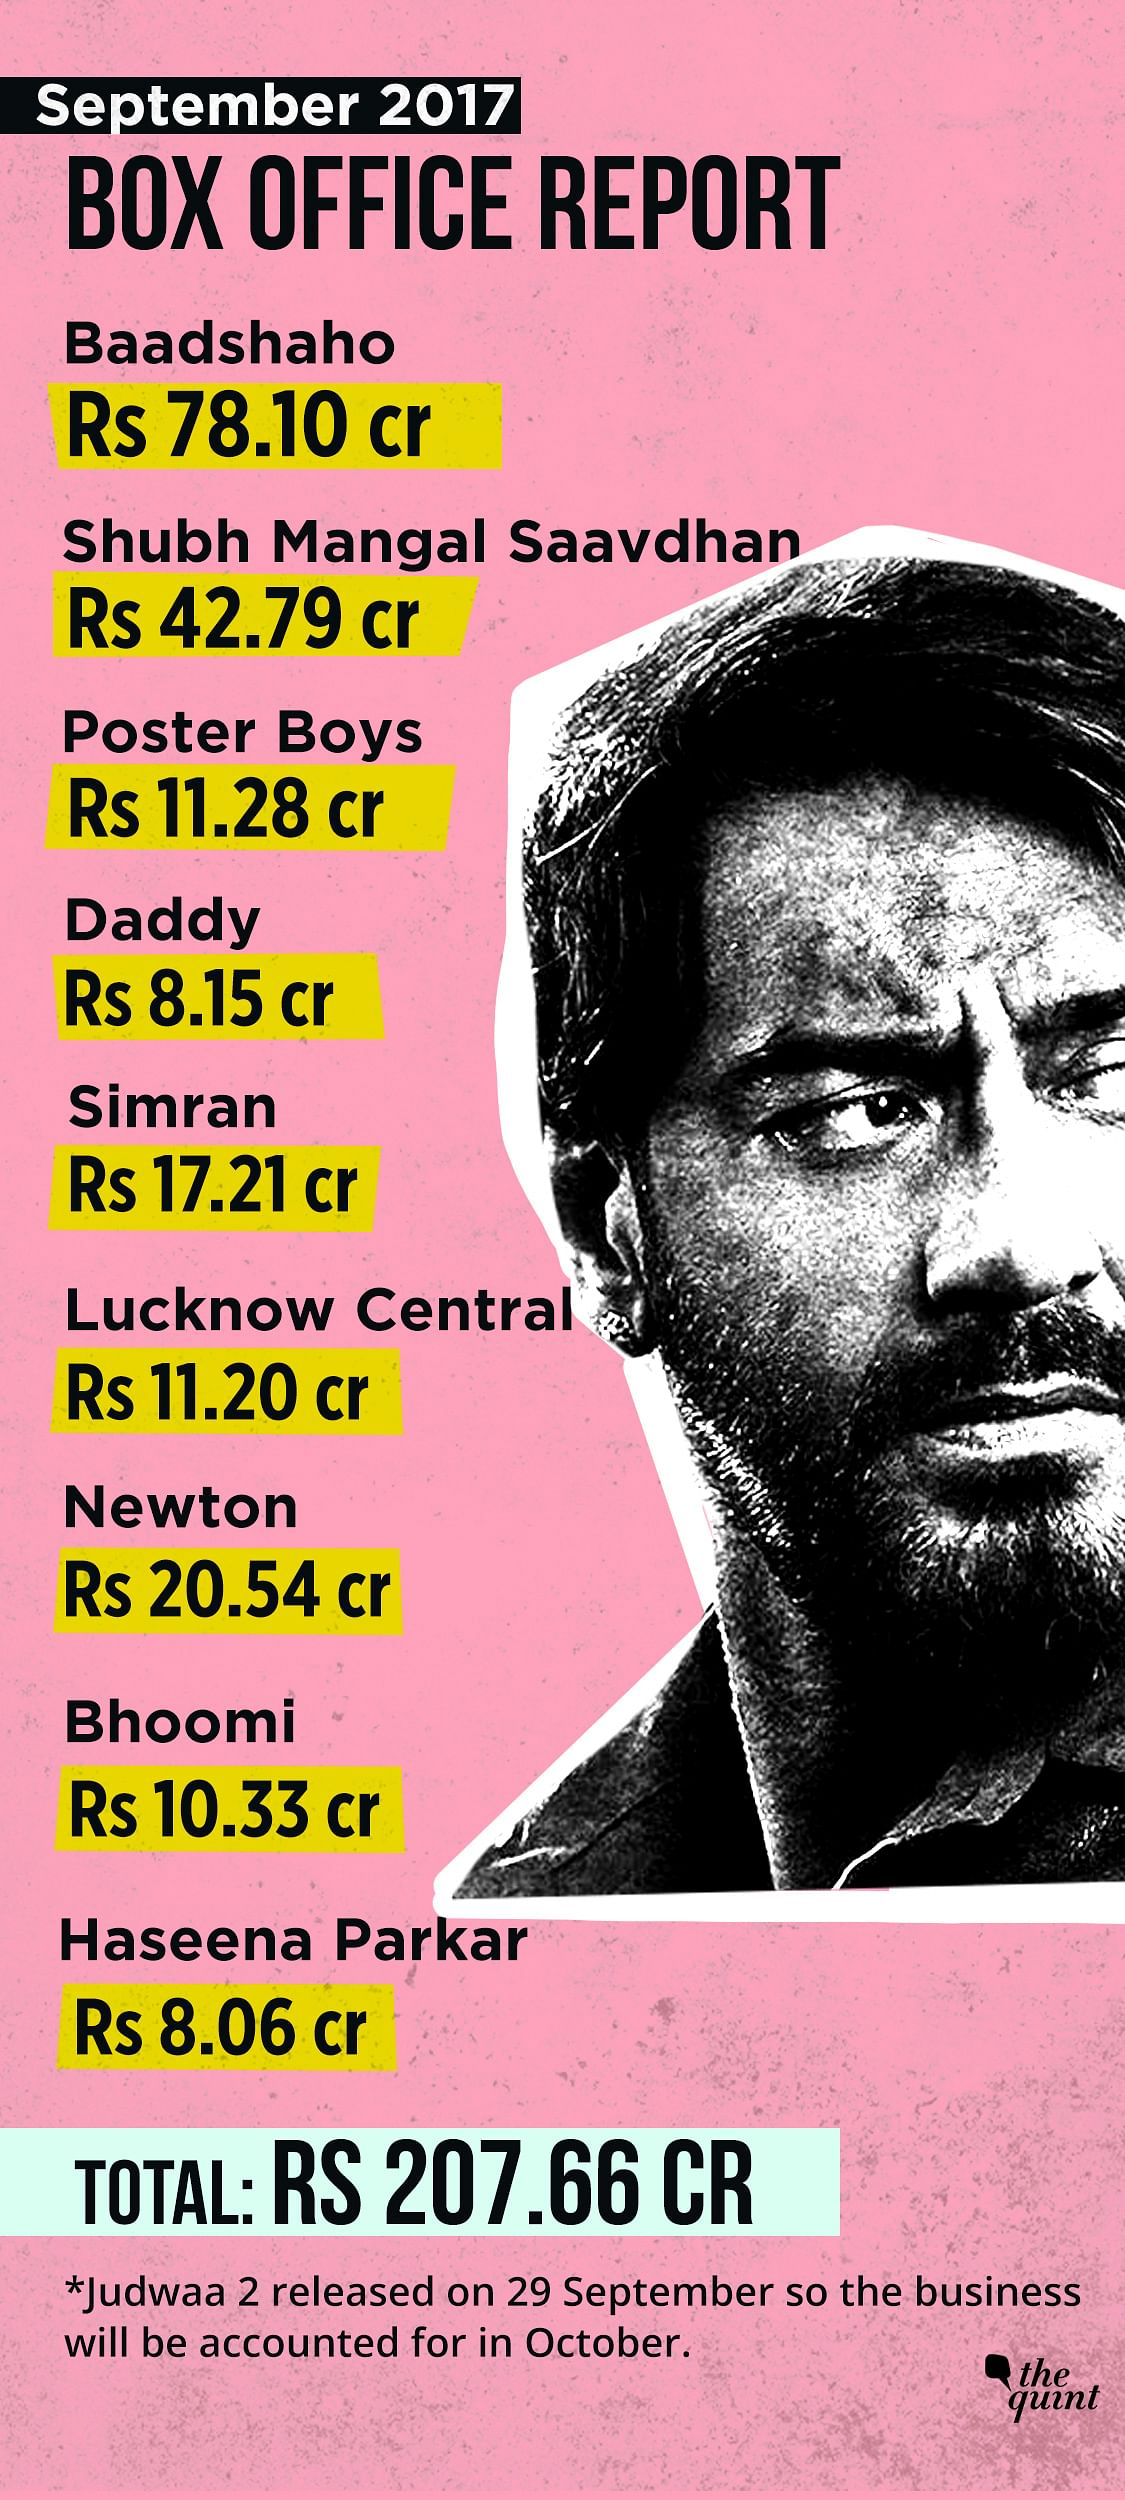 'Baadshaho' was the top earner in September 2017.